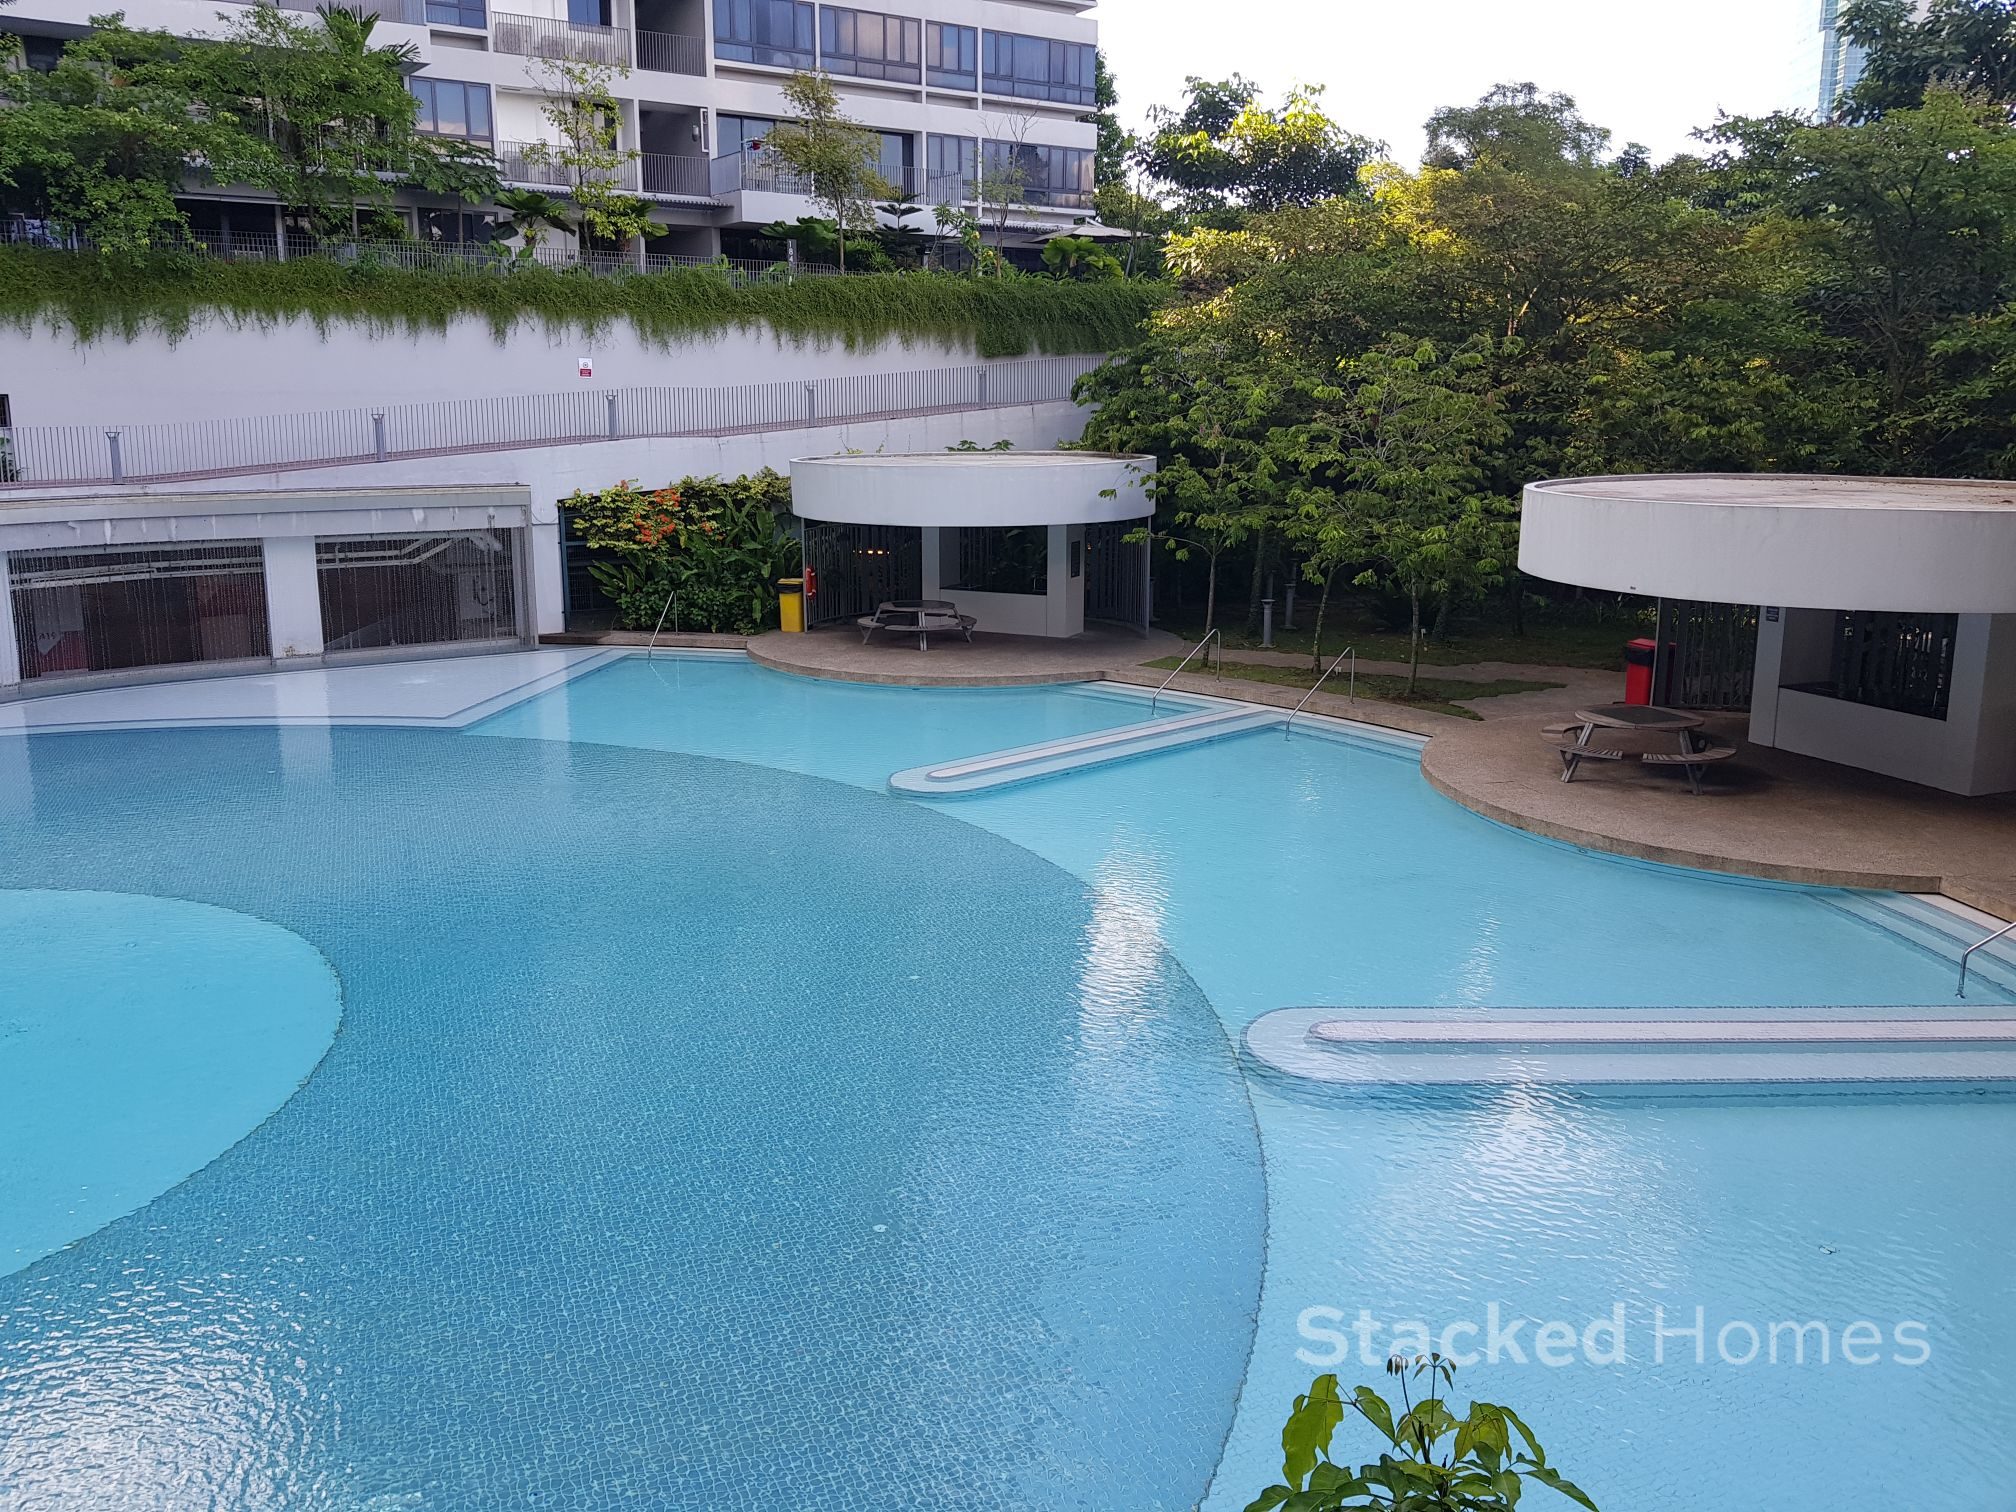 interlace condo pool